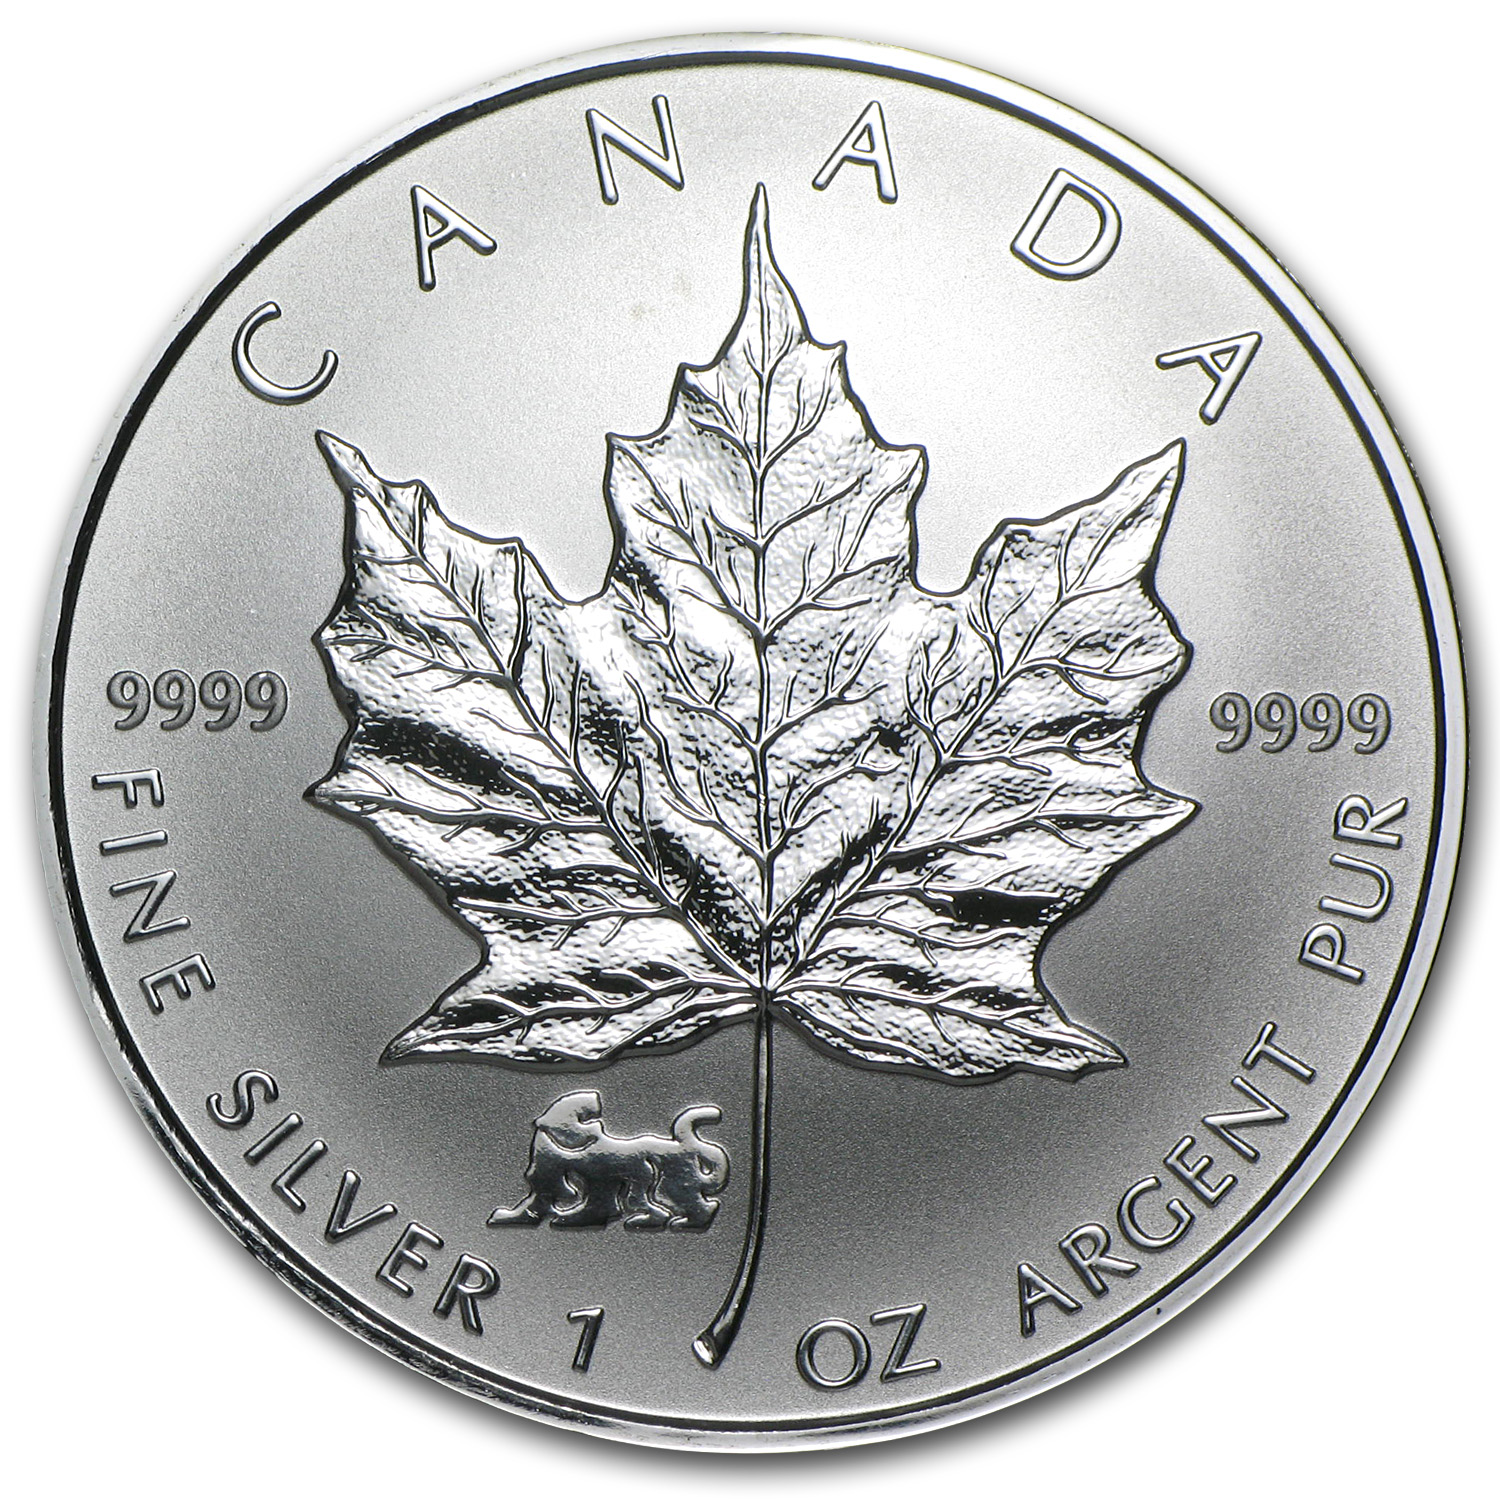 1998 1 oz Silver Canadian Maple Leaf (Lunar, TIGER Privy)